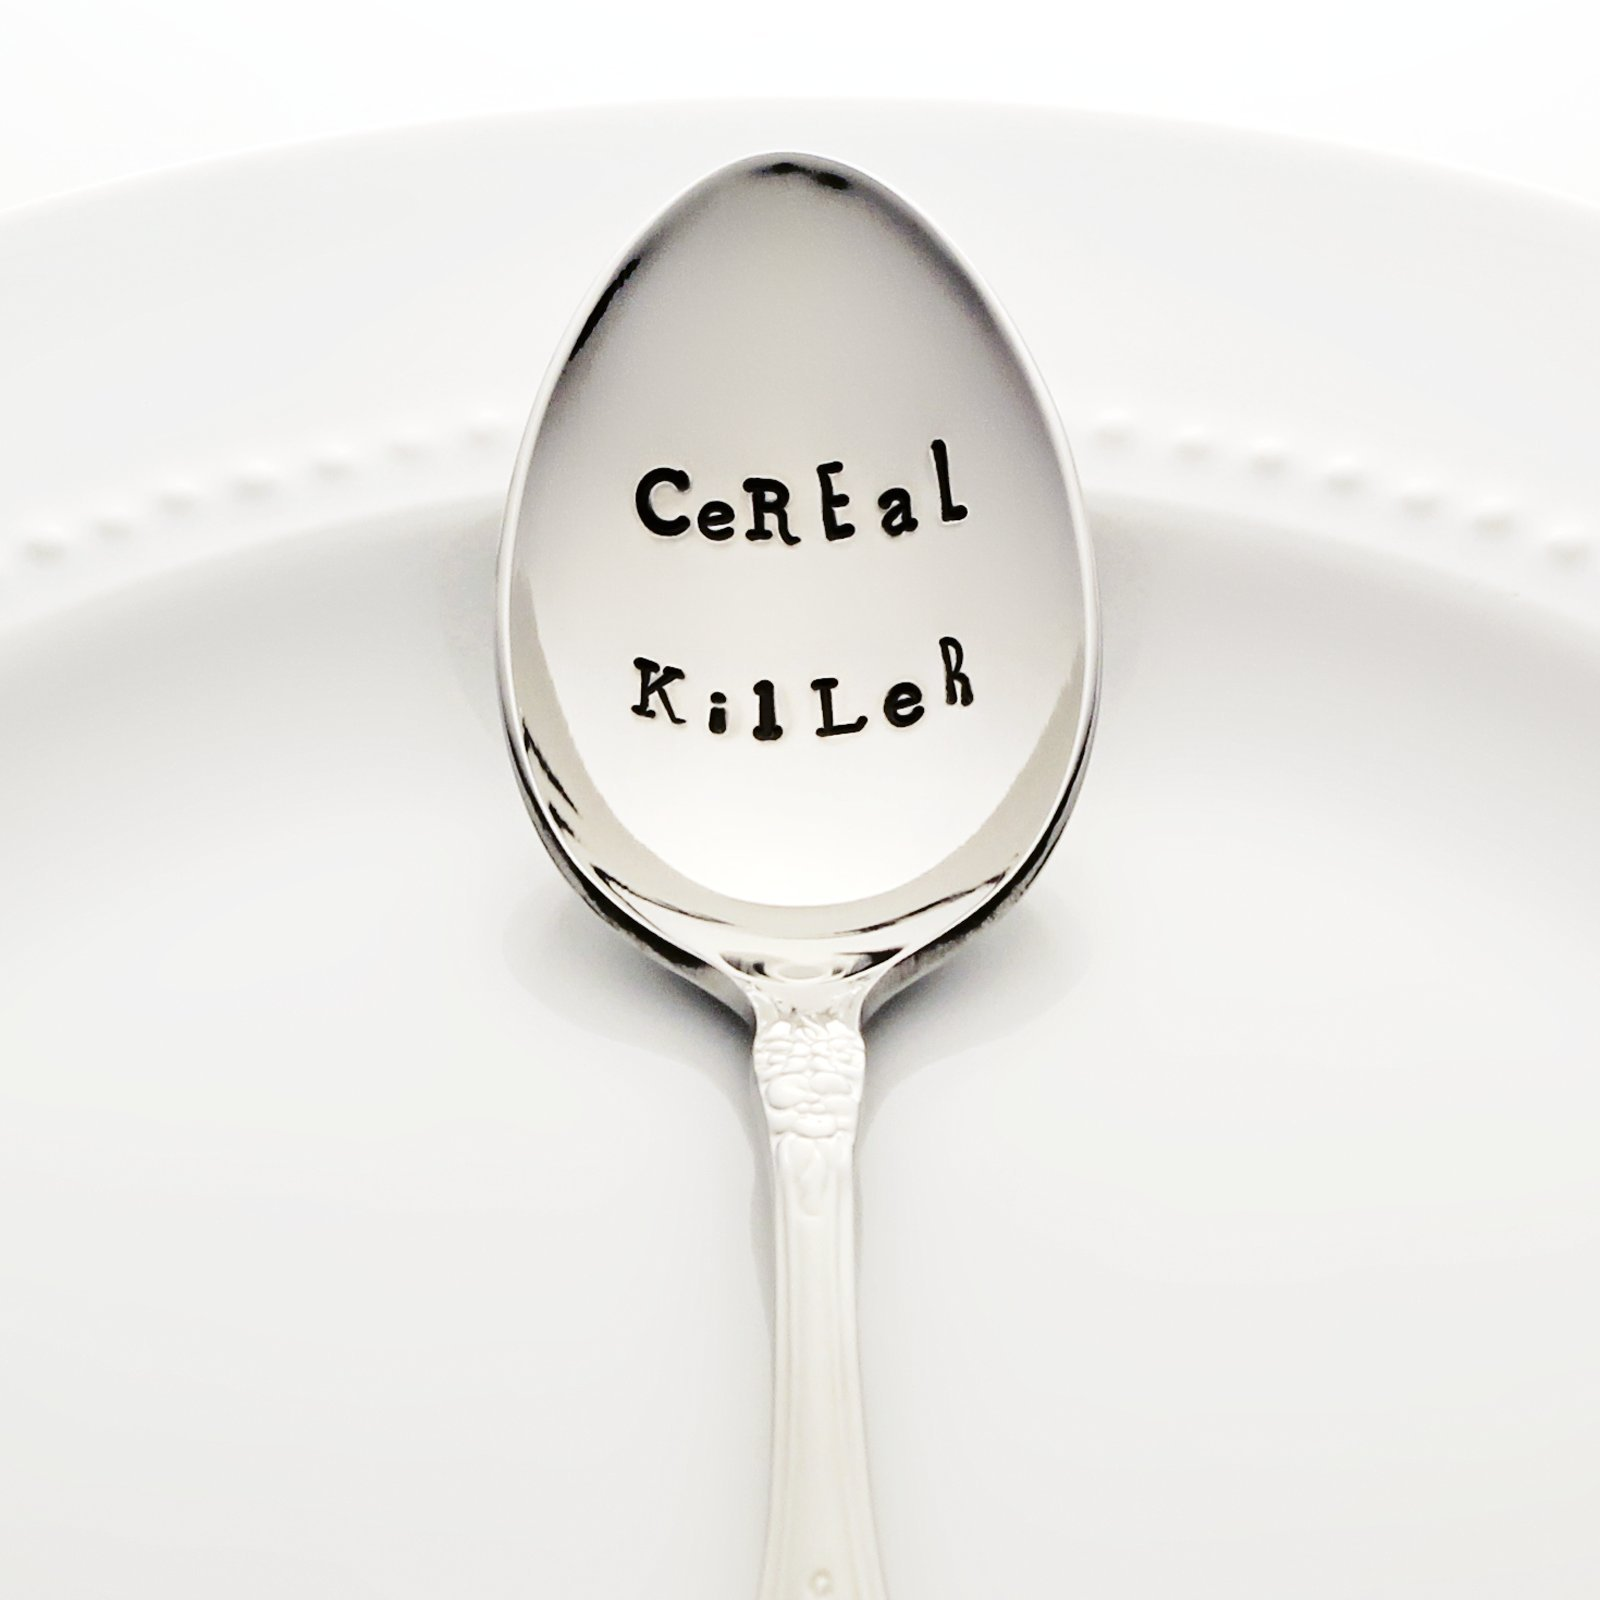 CeREaL KilLeR - Hand Stamped Spoon, Stainless Steel Stamped Silverware by Bon Vivant Design House - Food Pun Novelty Foodie Gifts